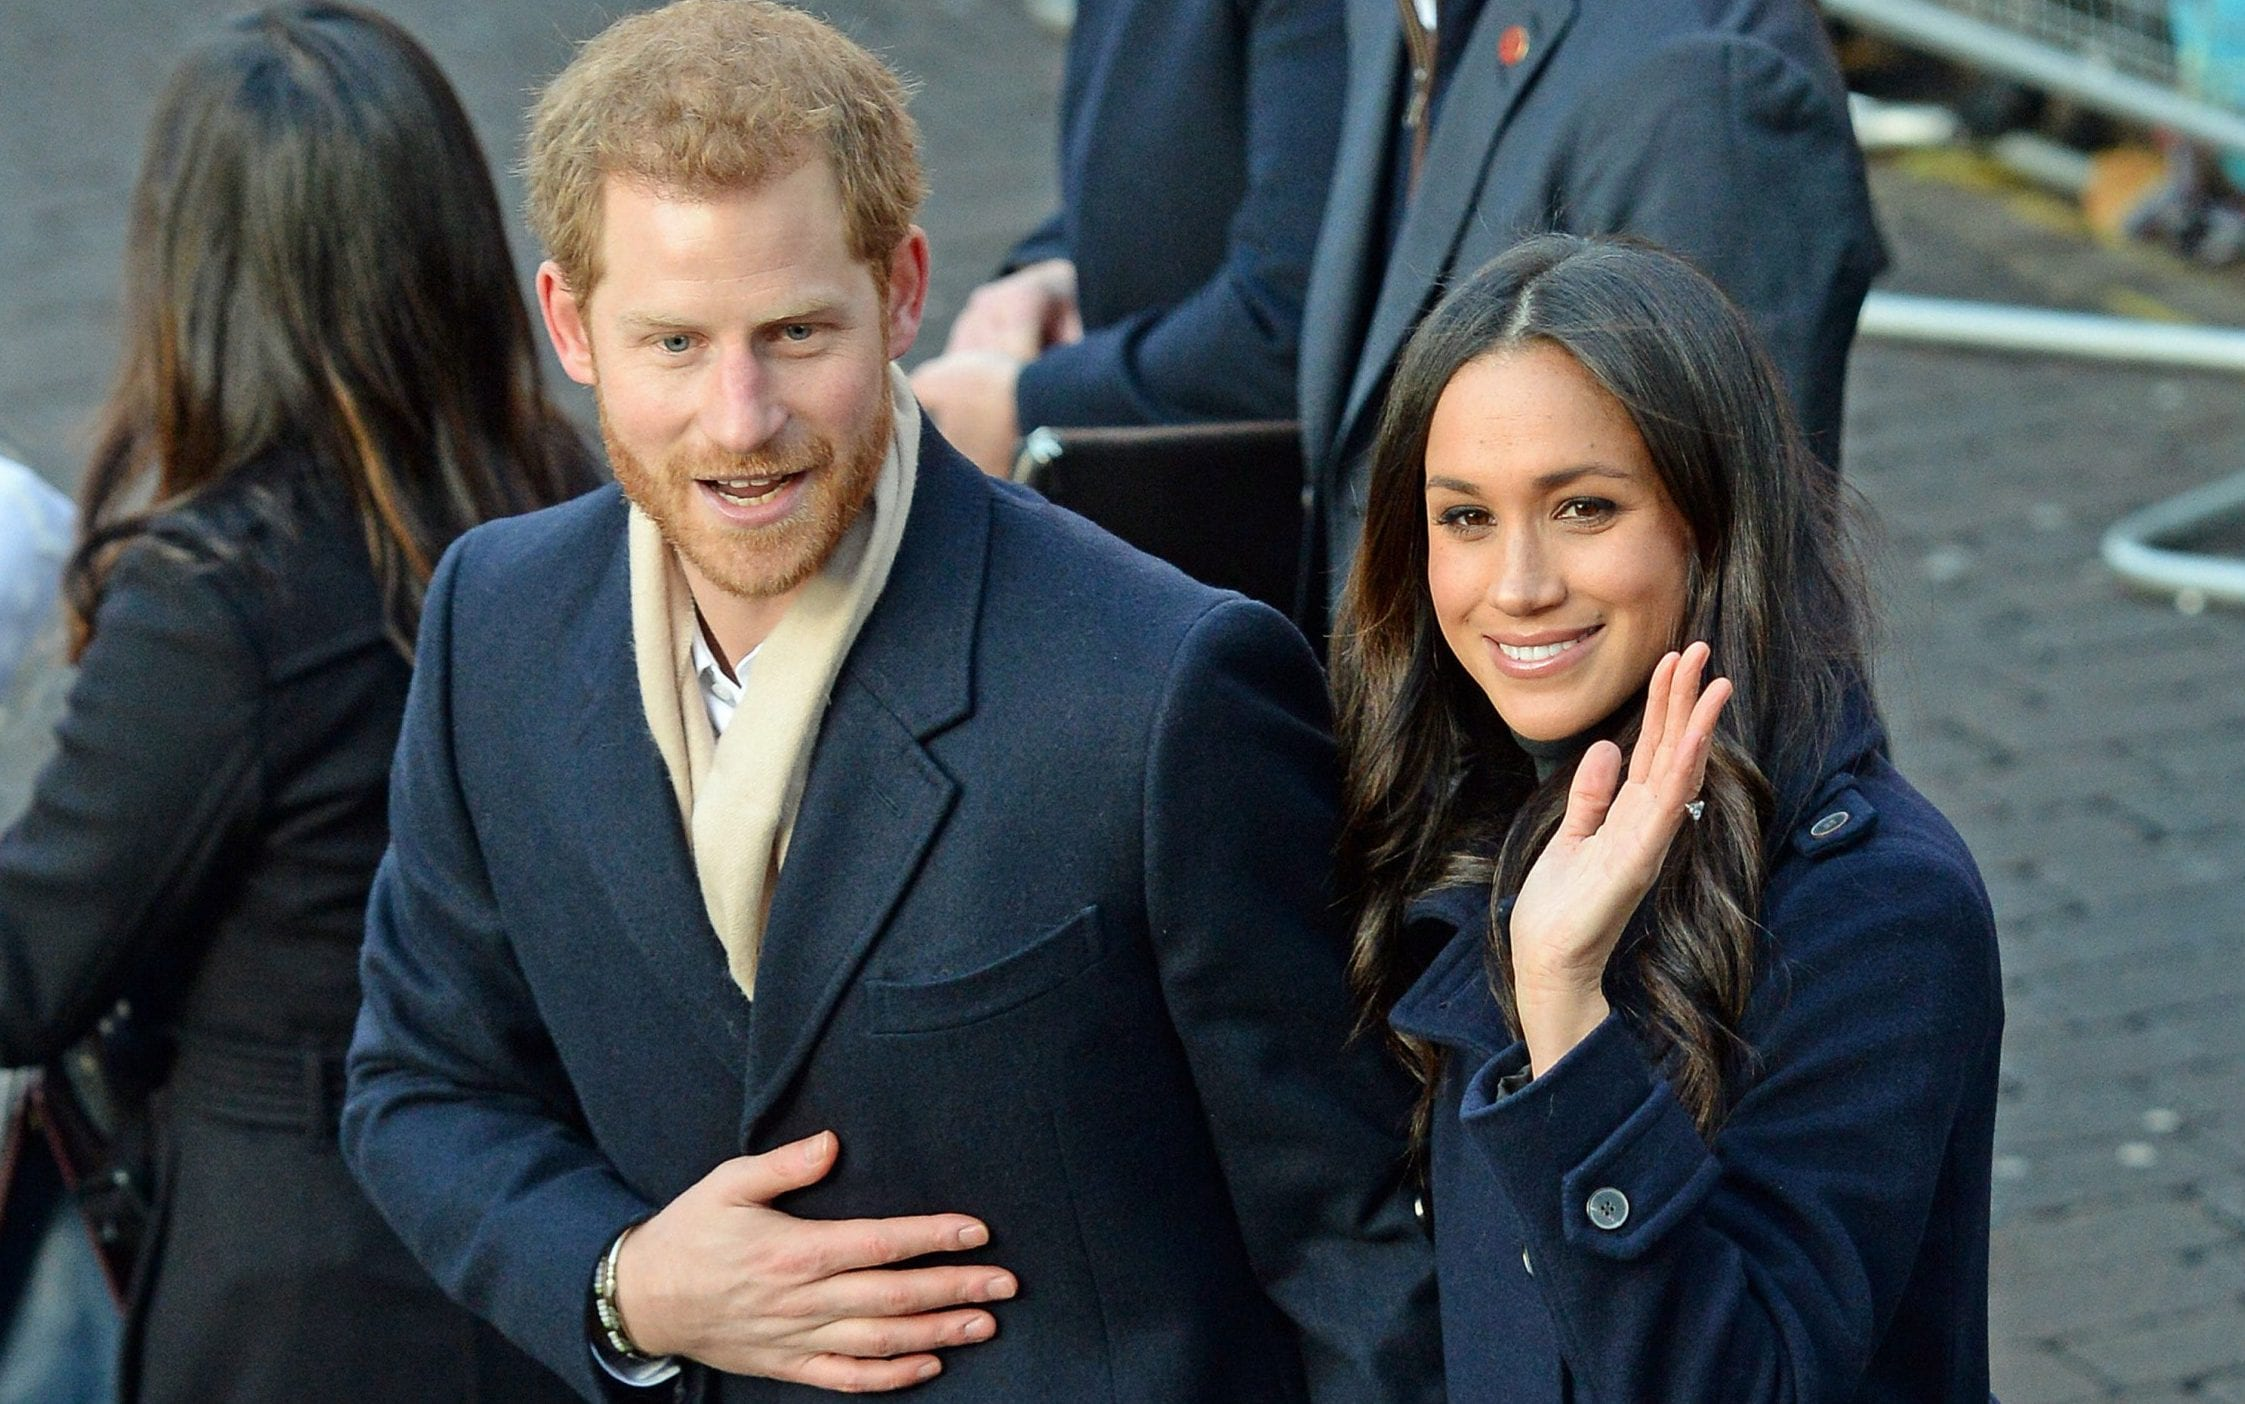 hey got engaged on November 27 and a few days later a proud prince introduced his bride-to-be to the nation during a series of official events in Nottingham.